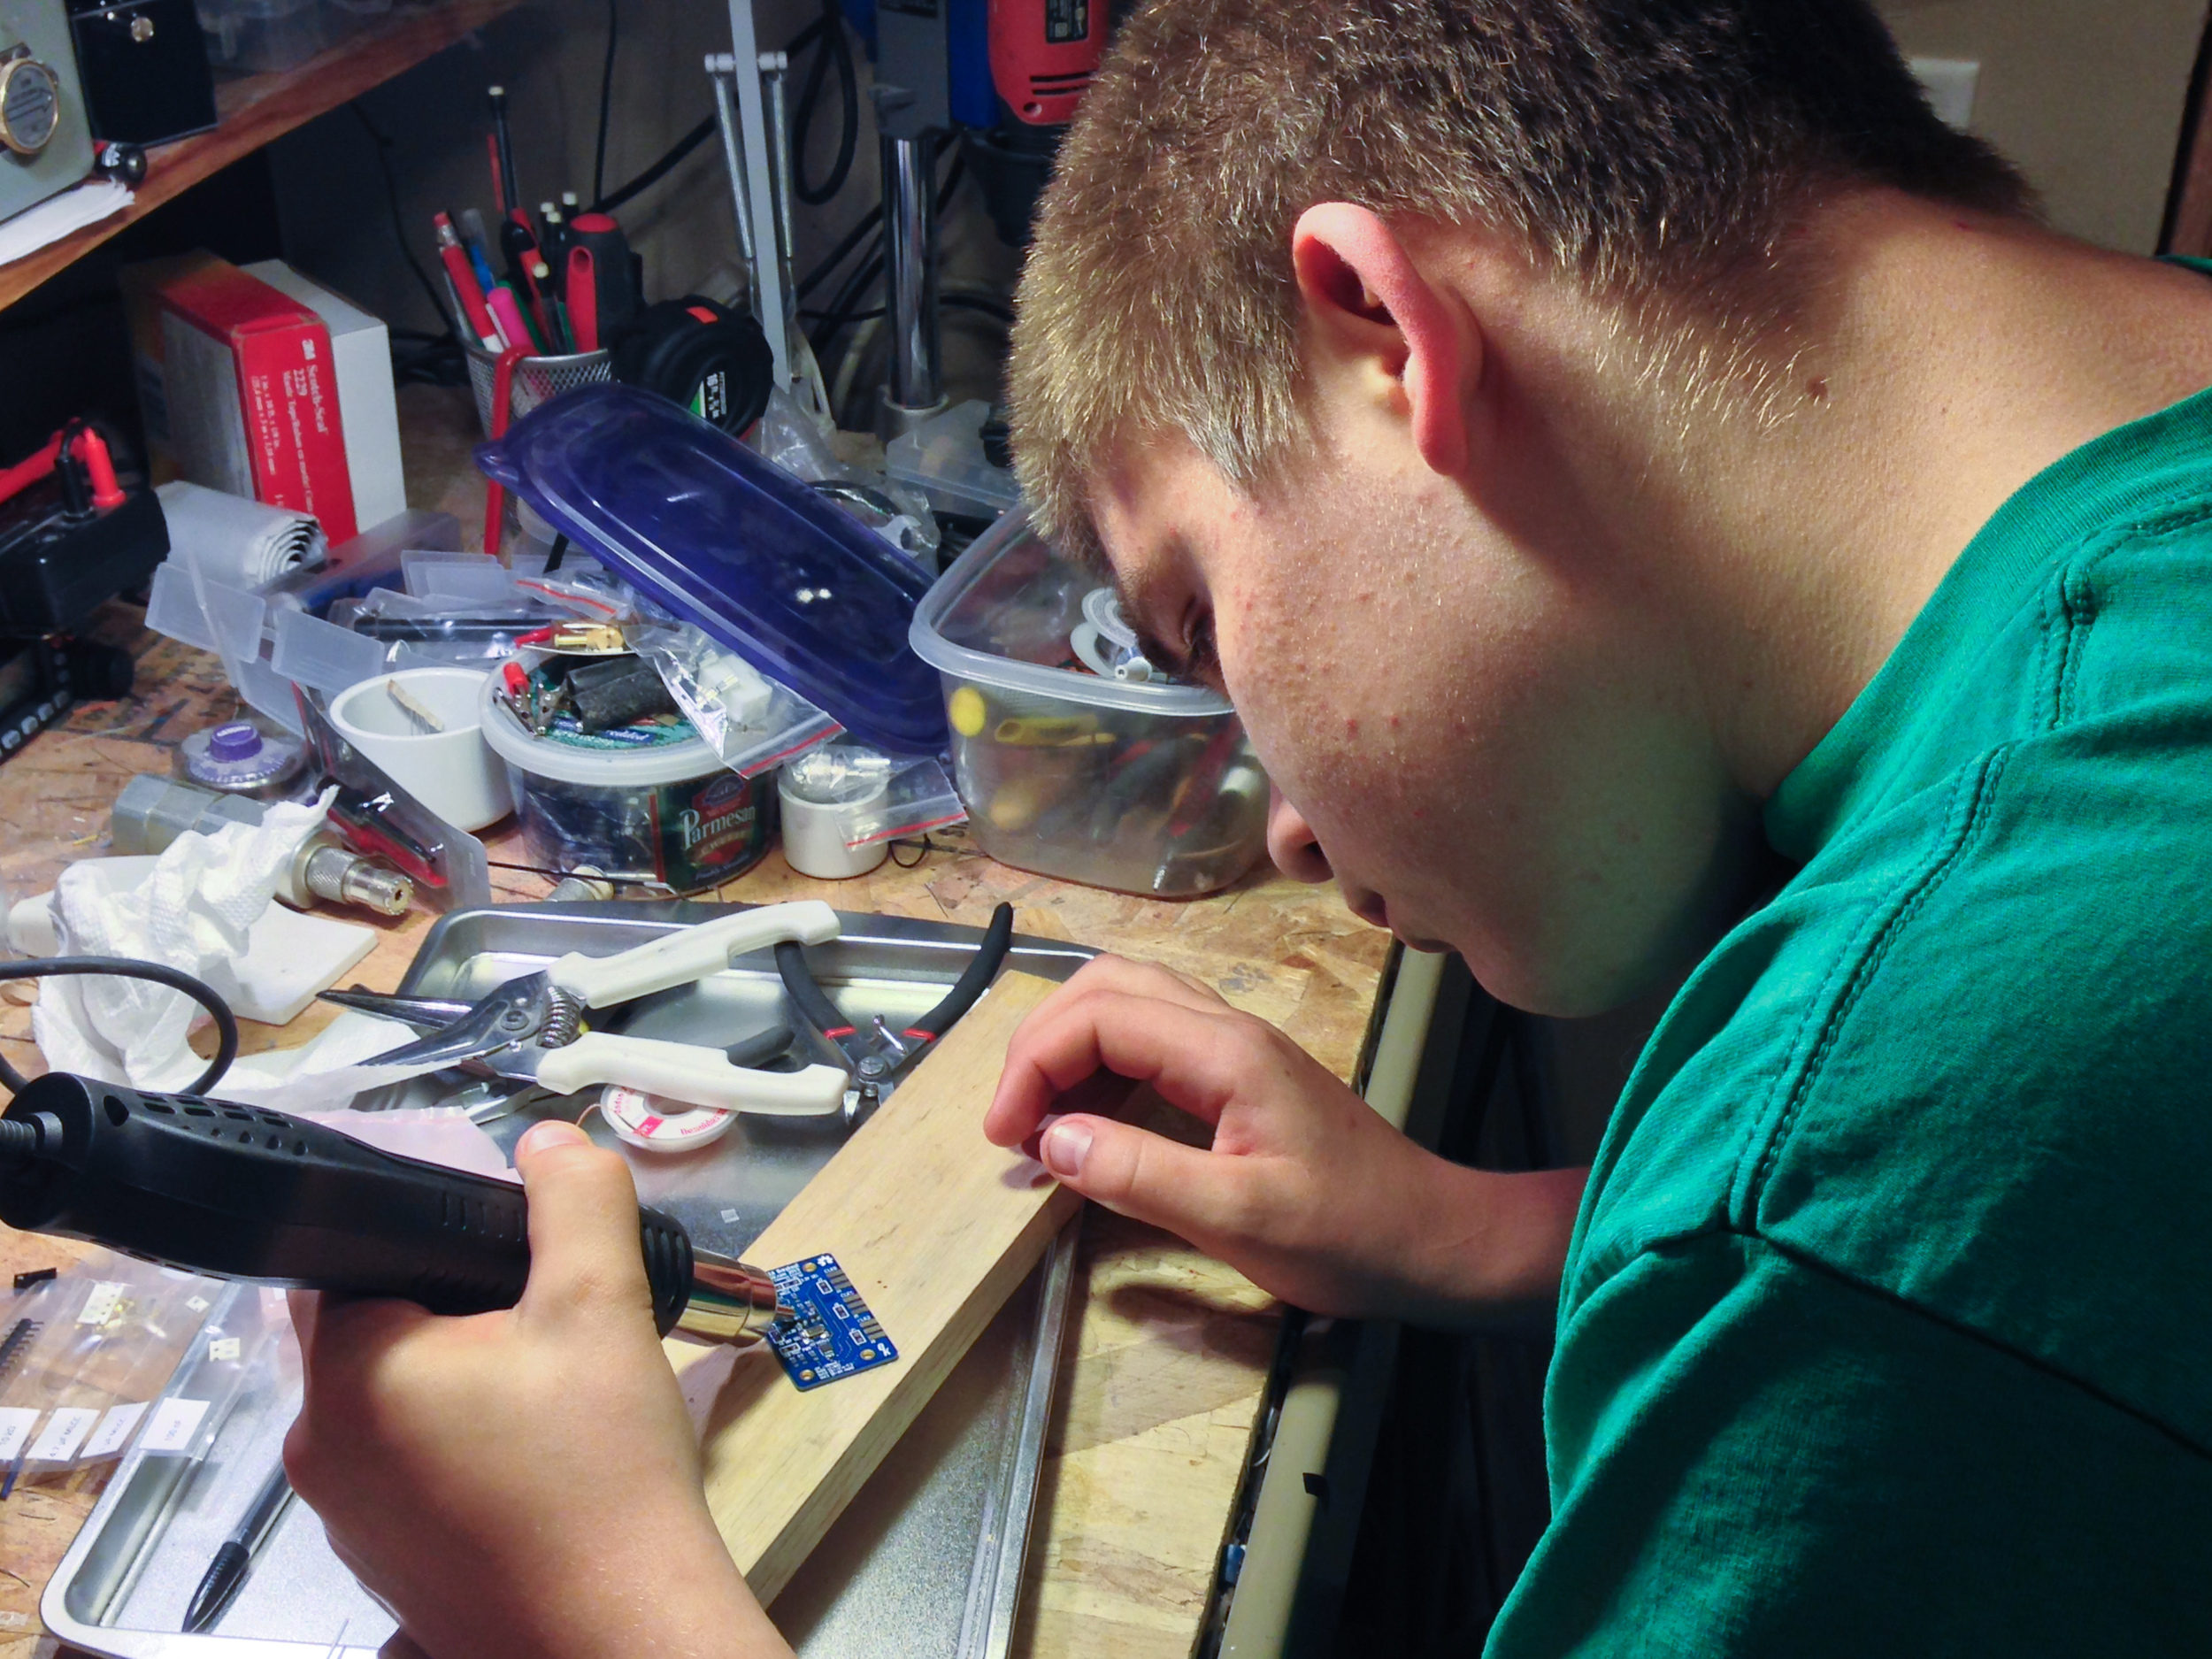 Ben (N2BEN 14) is using the reflow station for the first time after watching me